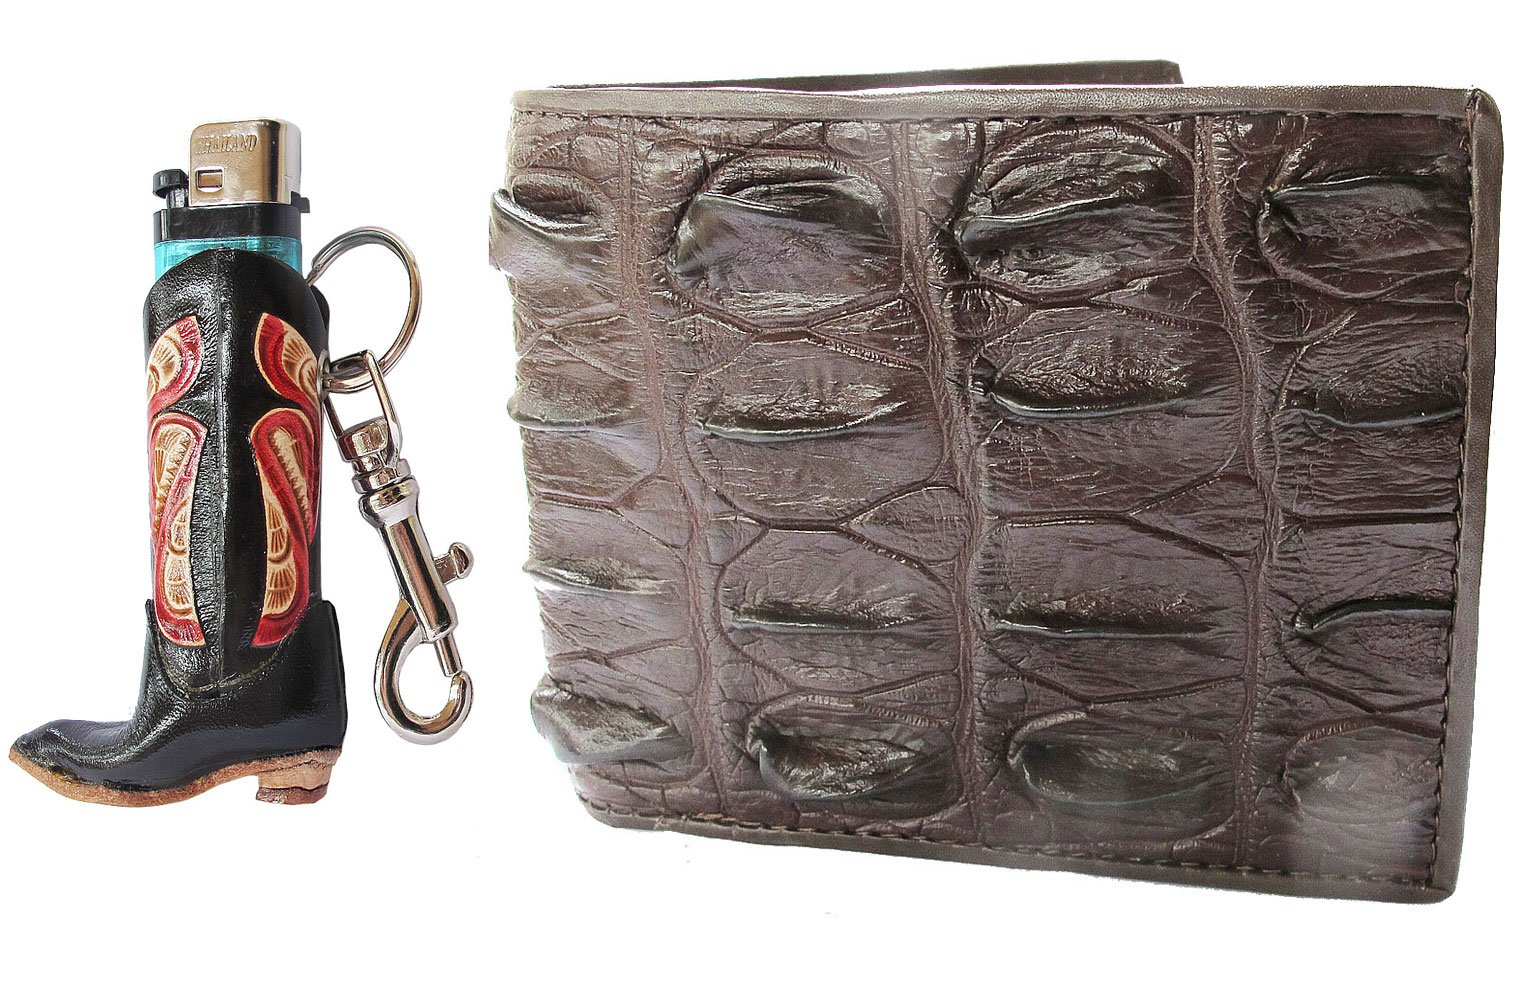 Danai Presents!. GENEUINE CROCODILE LEATHER BI FOLD WALLET US SIZE COME ALONG WITH LIGHTER CASE (BOOT)